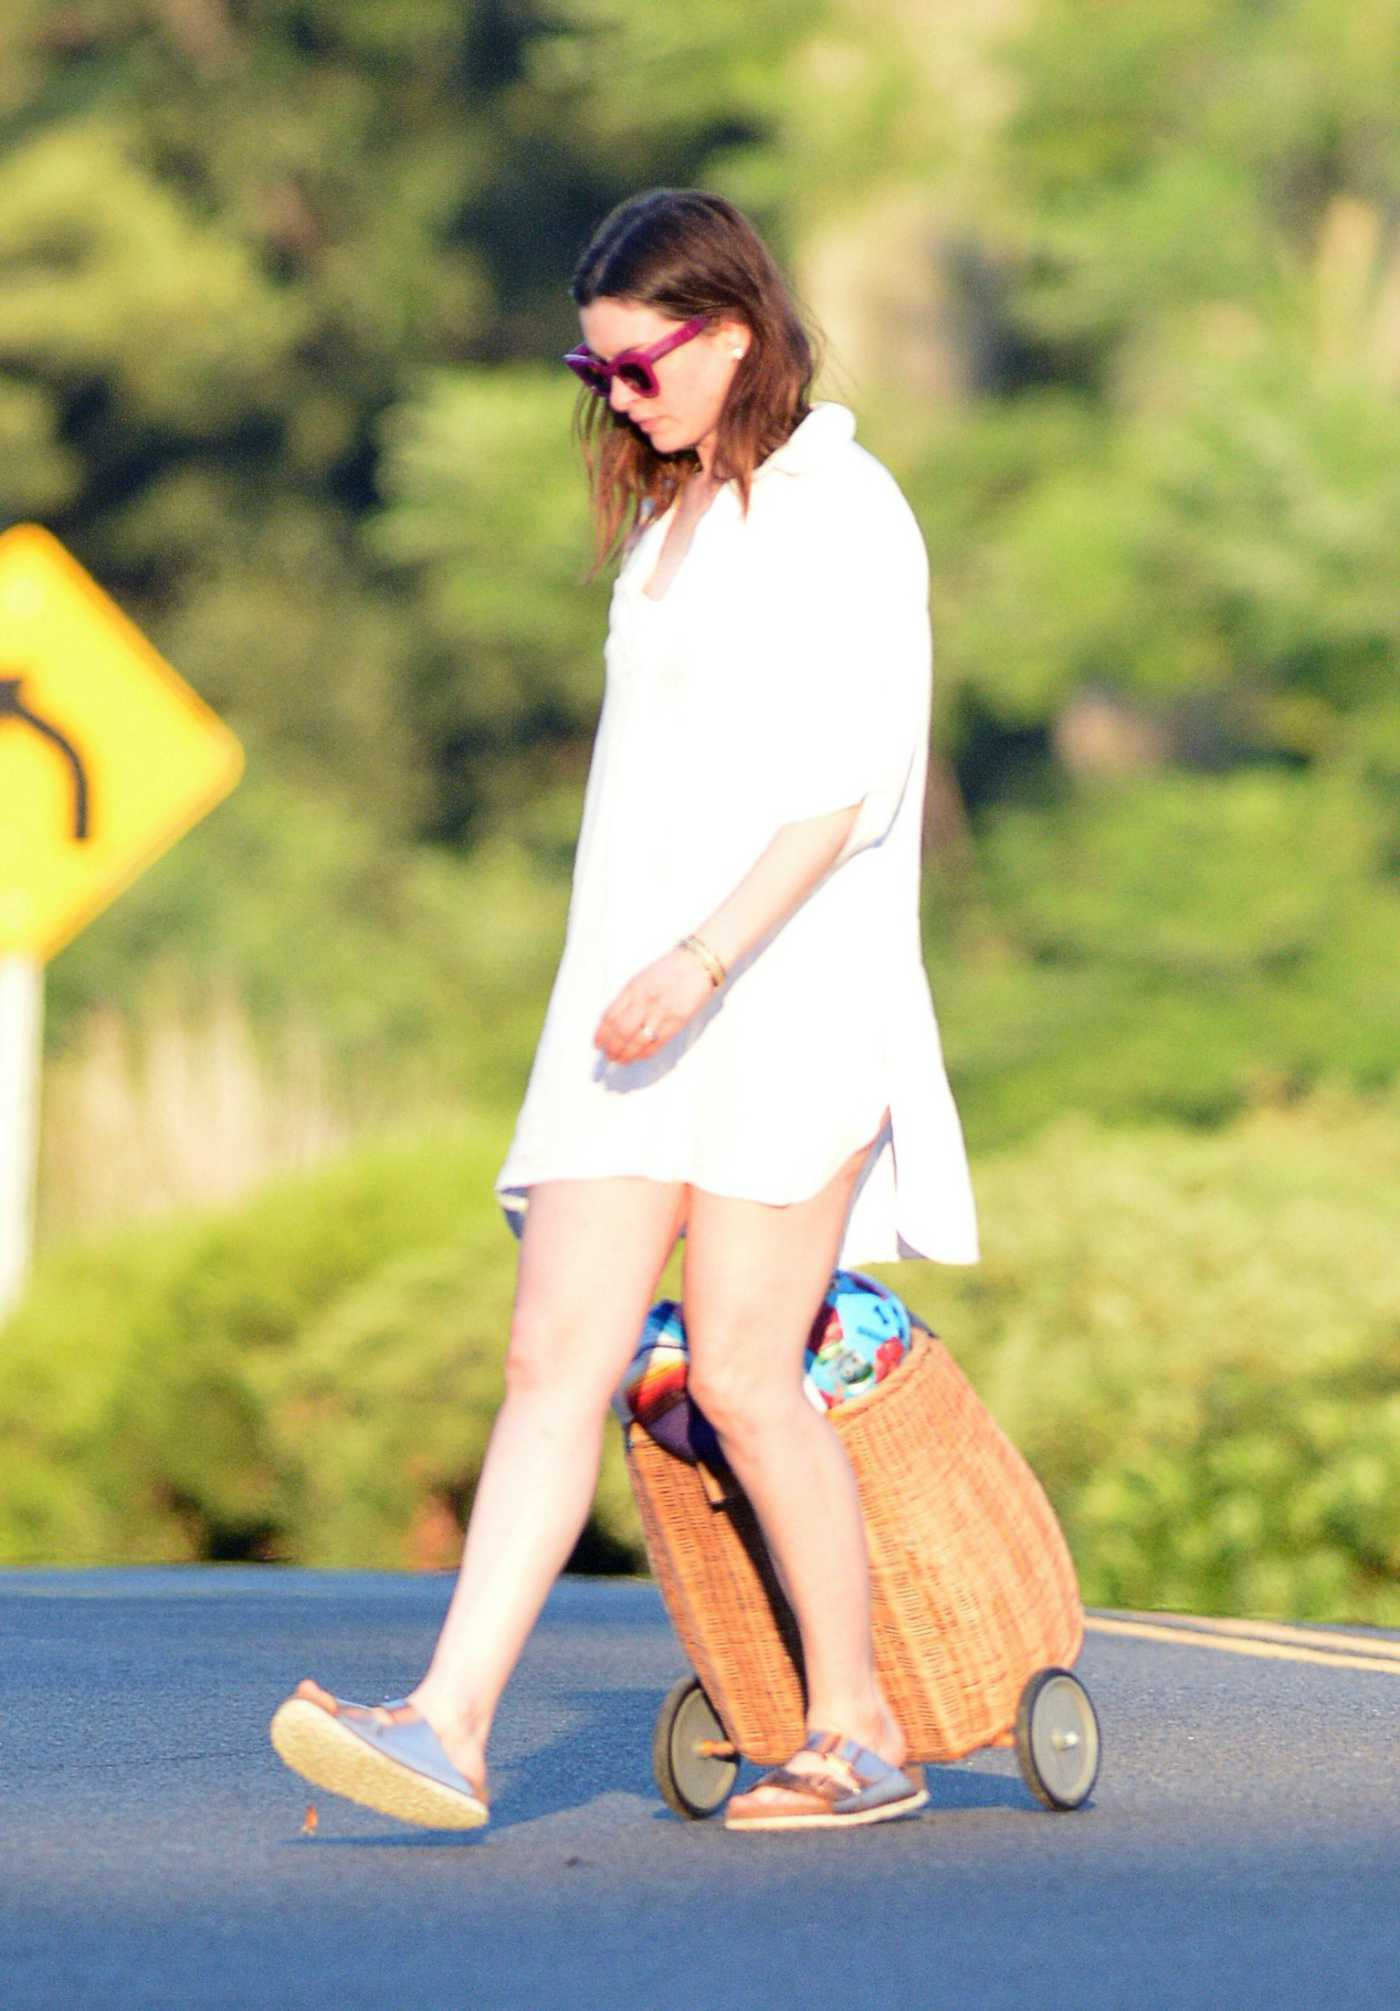 Anne Hathaway in a Long White Shirt Heads to the Beach in Connecticut 07/30/2020